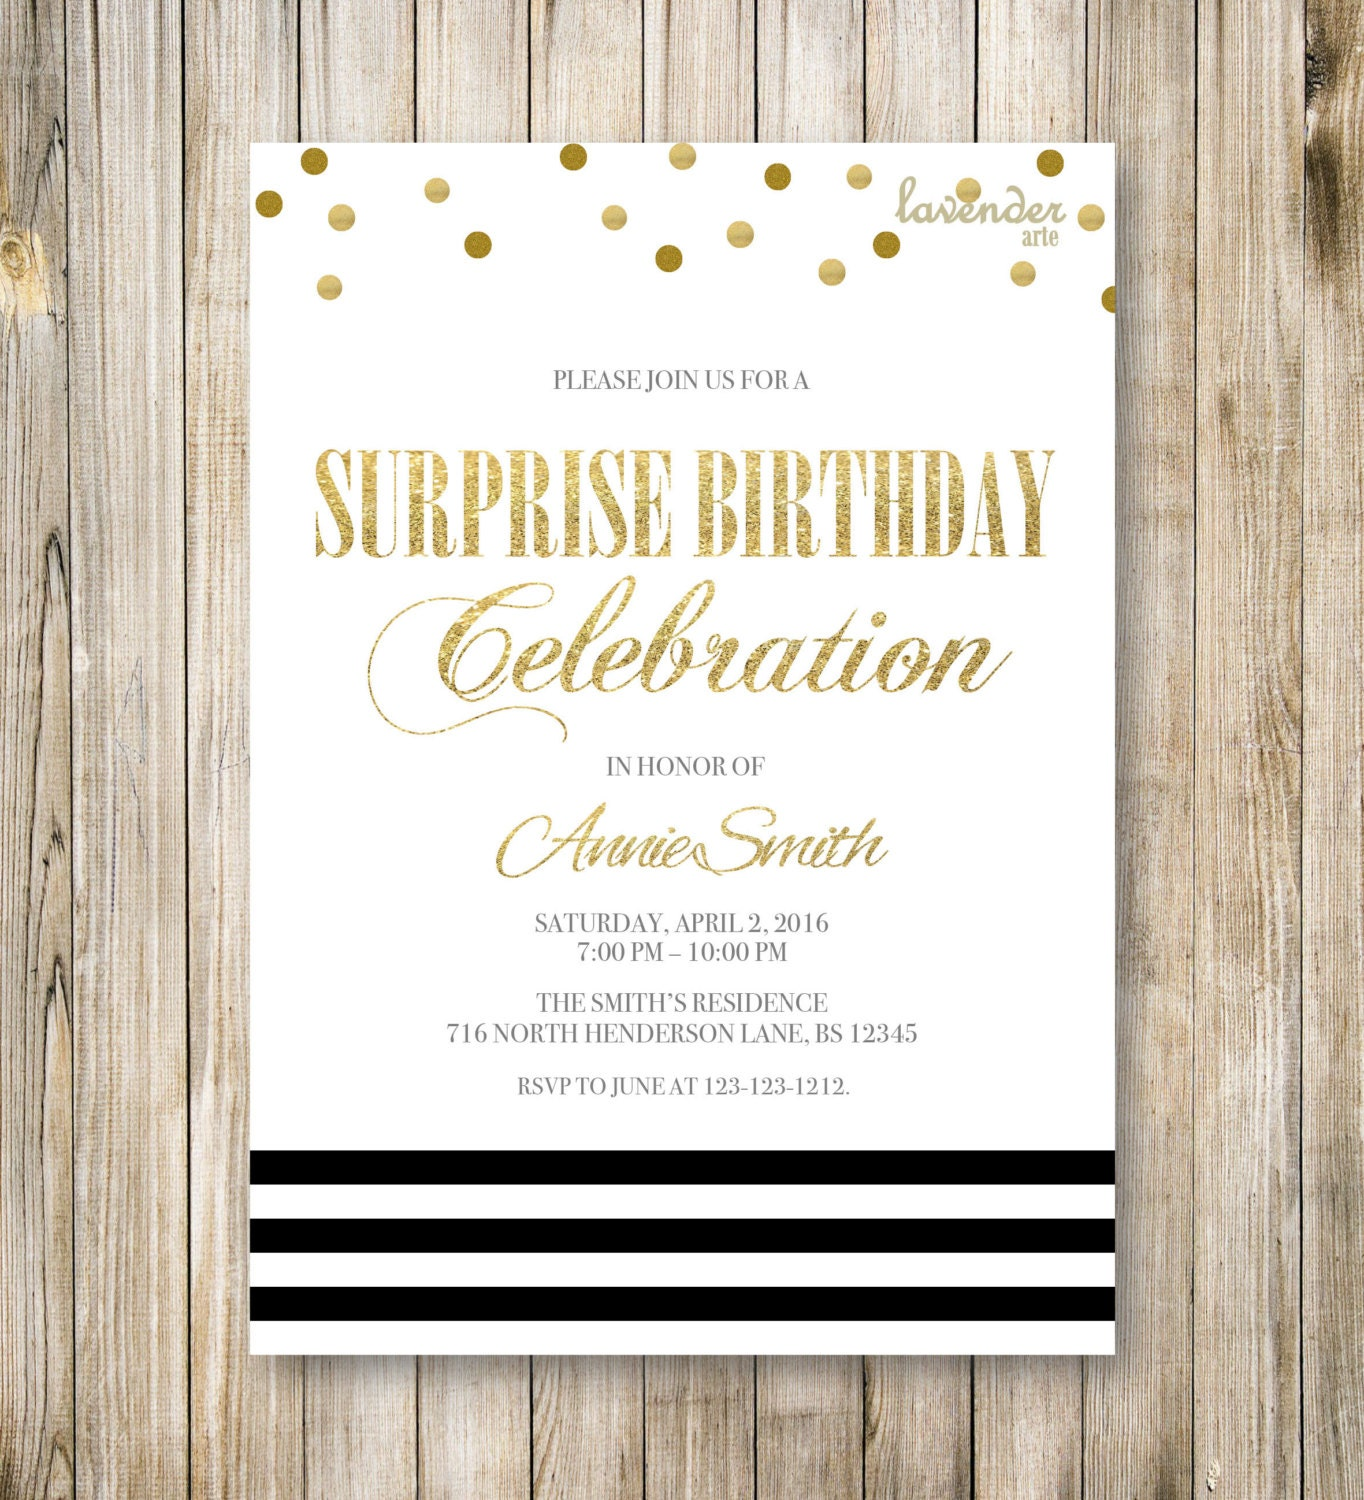 Minimalist SURPRISE BIRTHDAY Party Invitation Shhh It's A